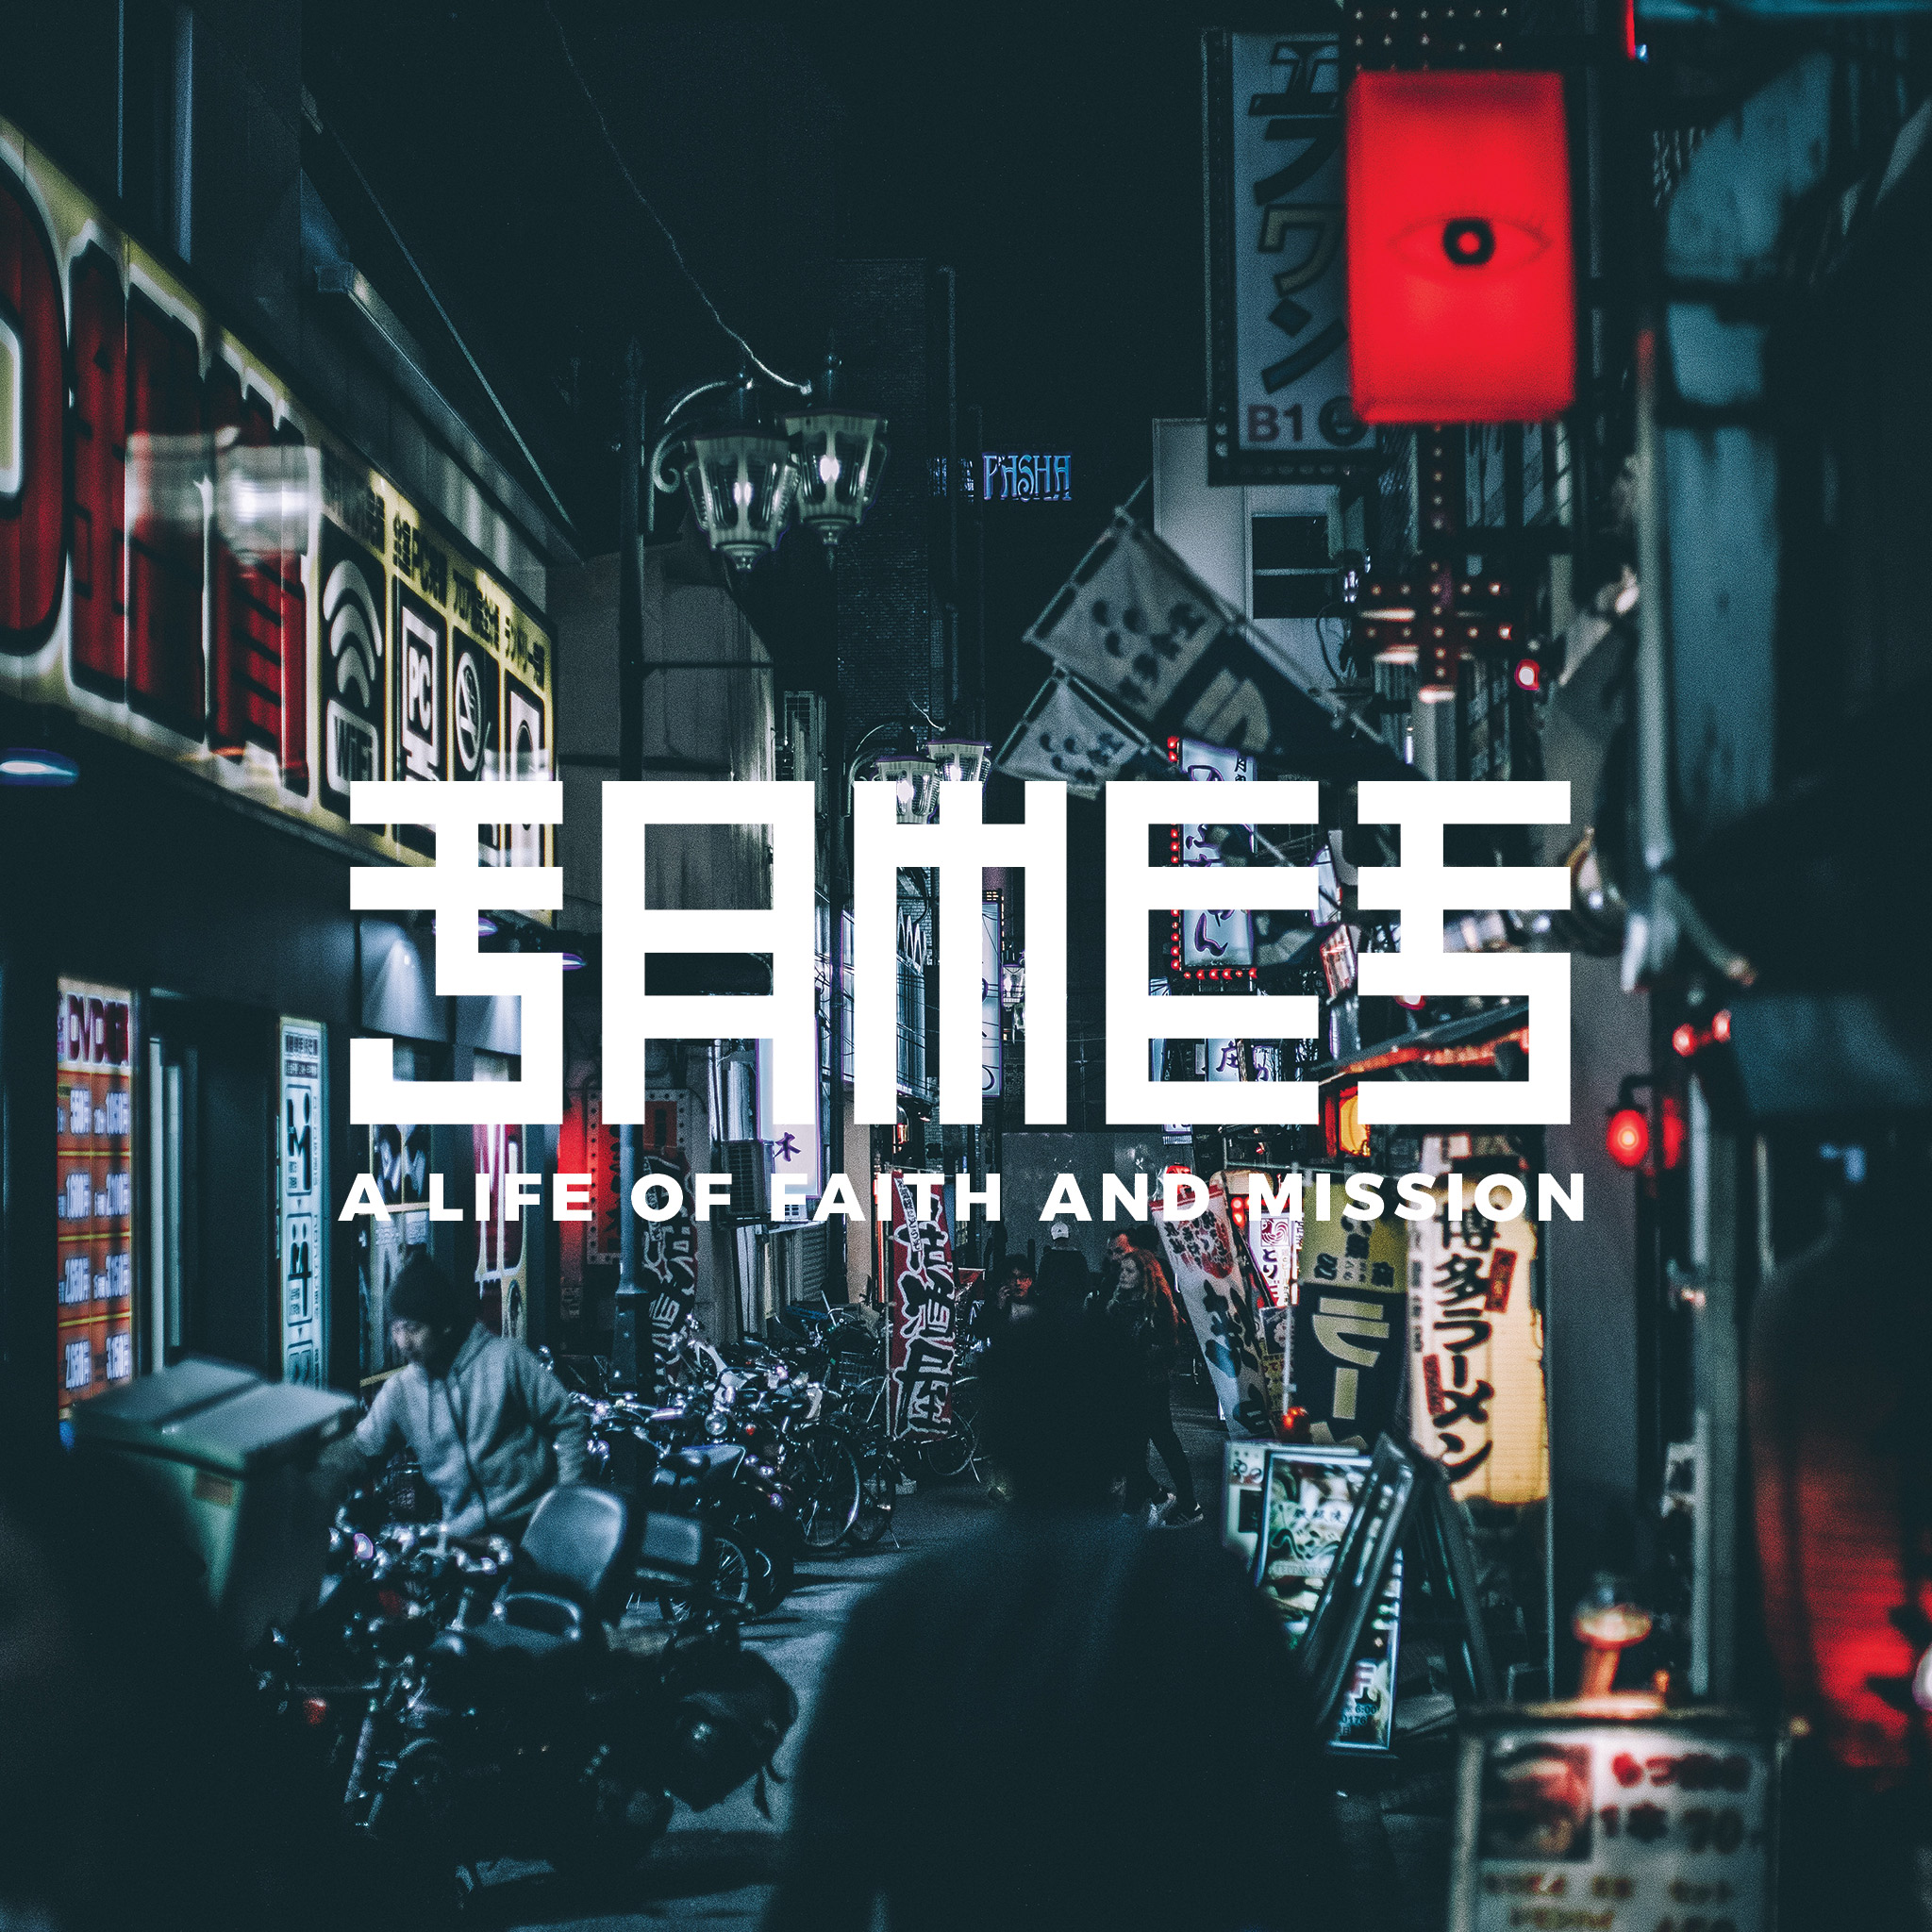 July 9th - August 27, 2017  James: A Life of Faith and Mission